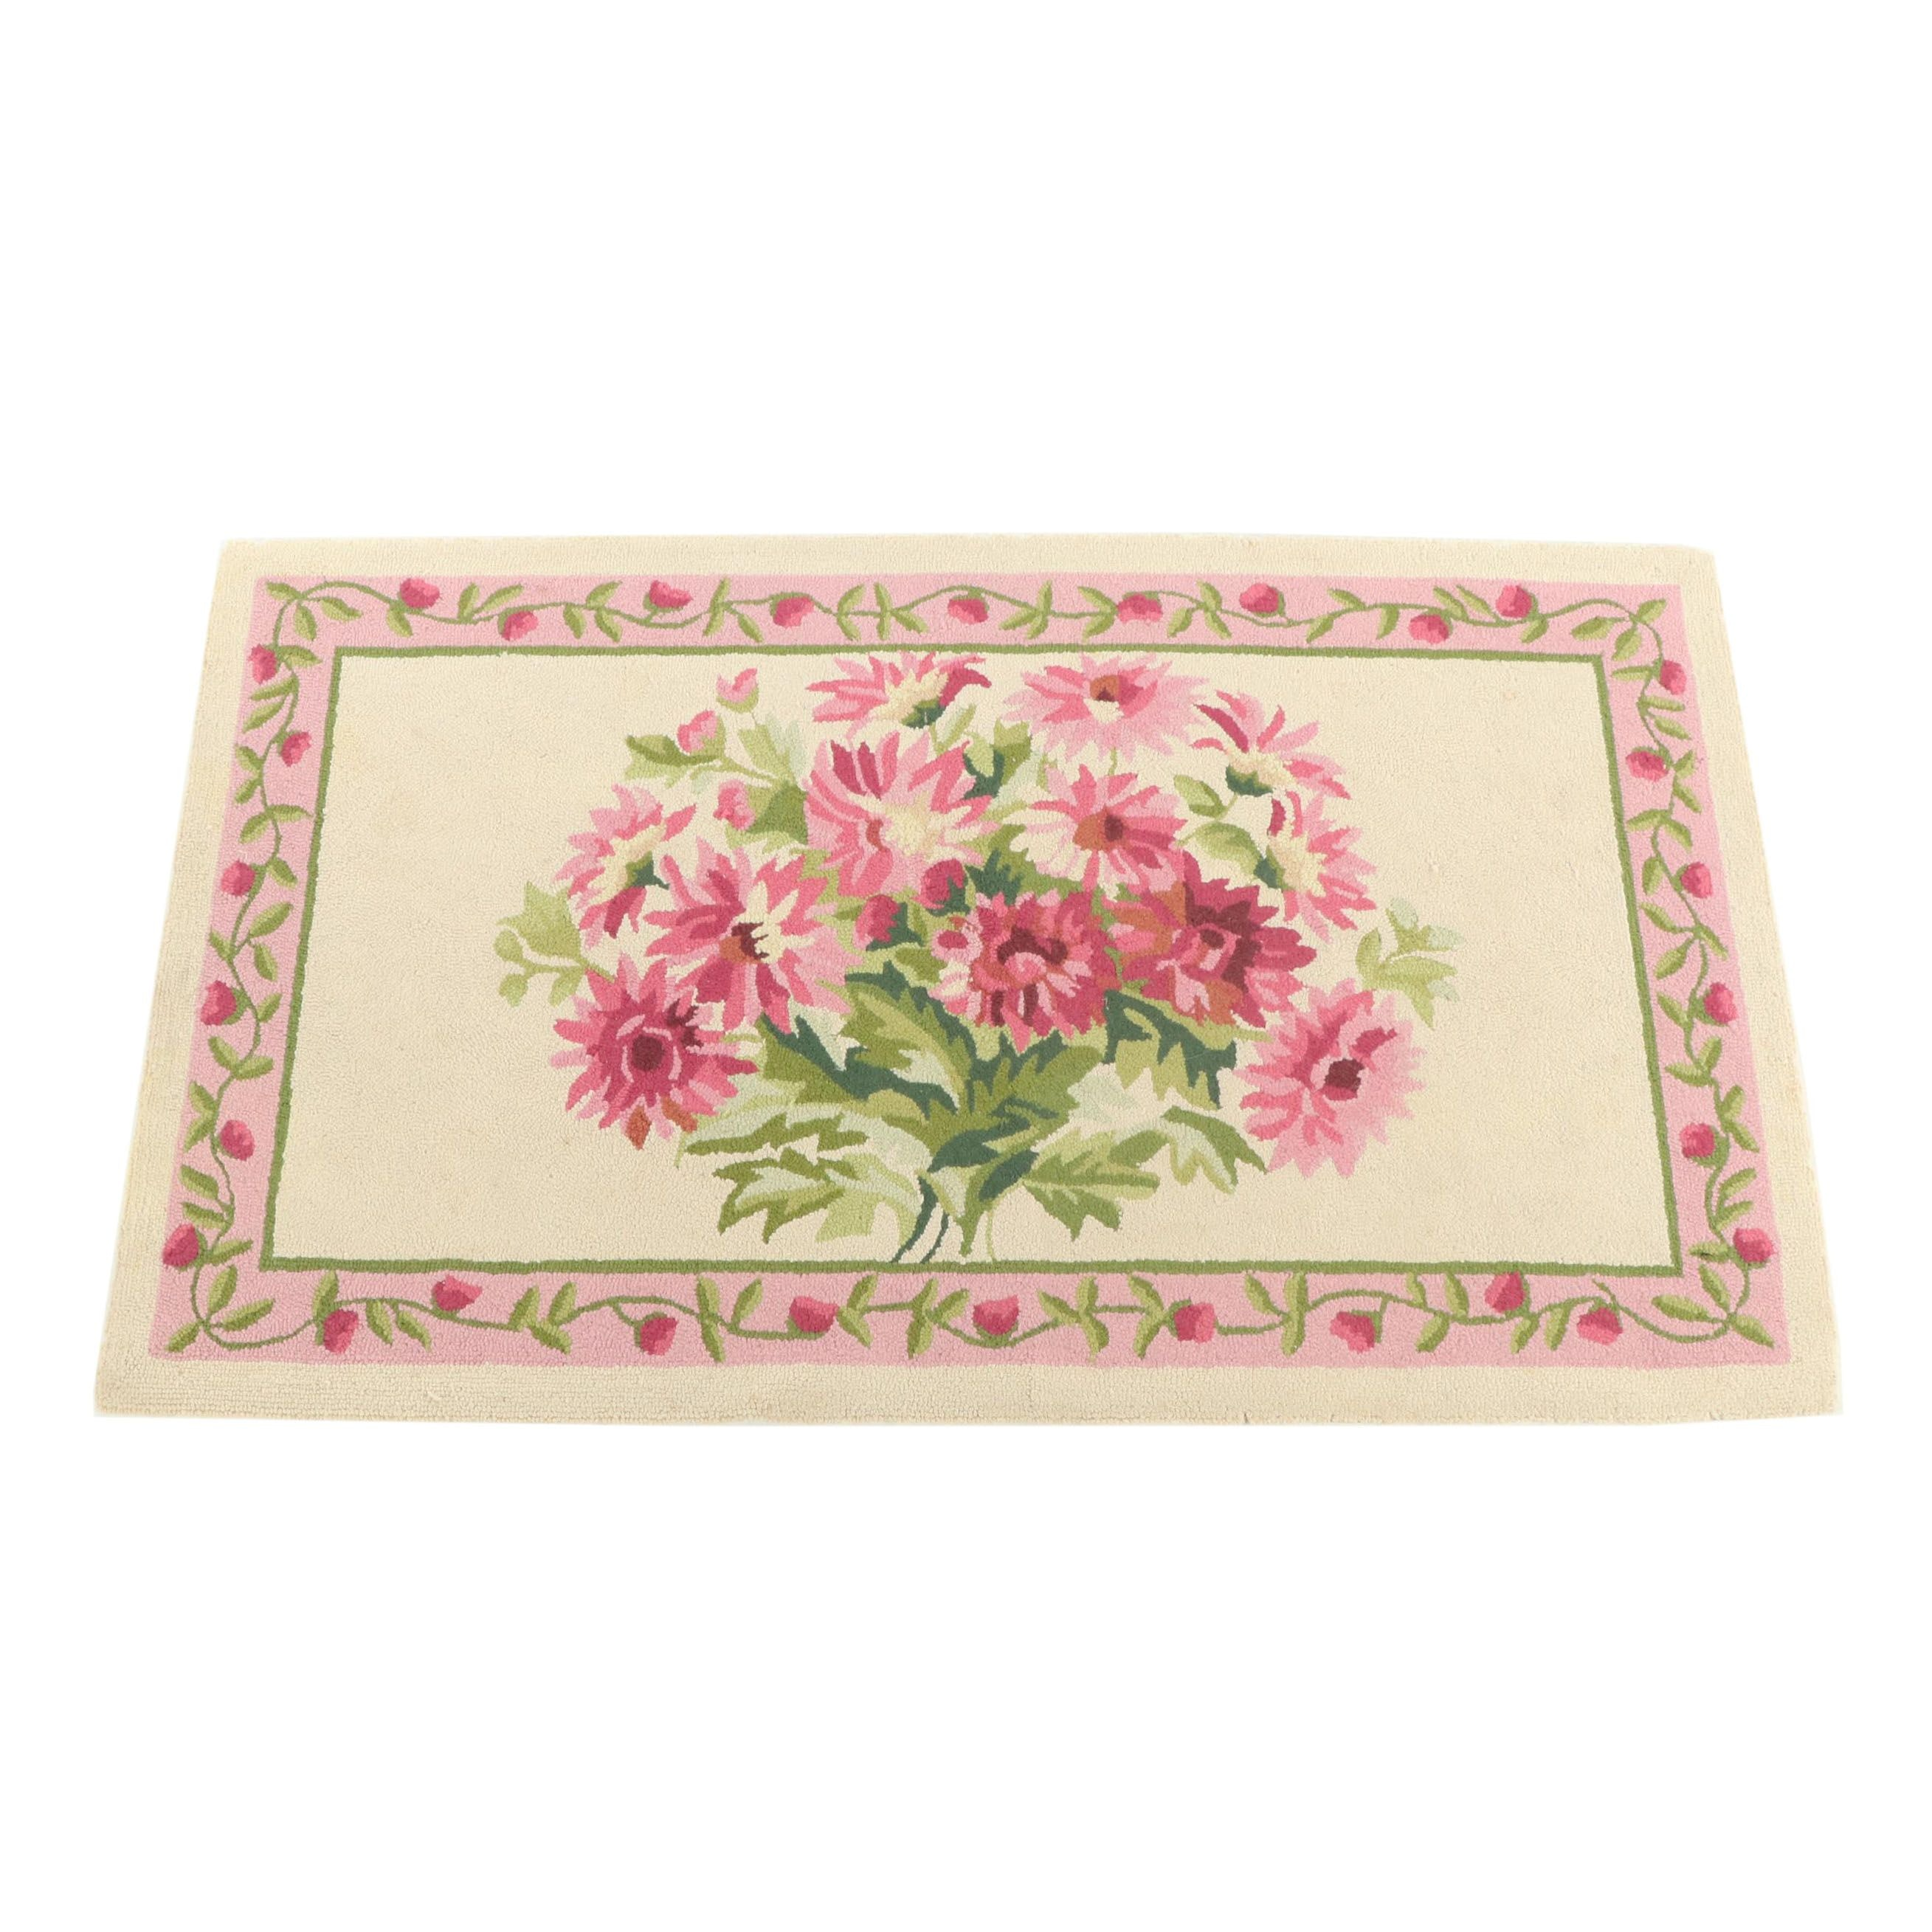 Hooked Floral Wool Blend Accent Rug